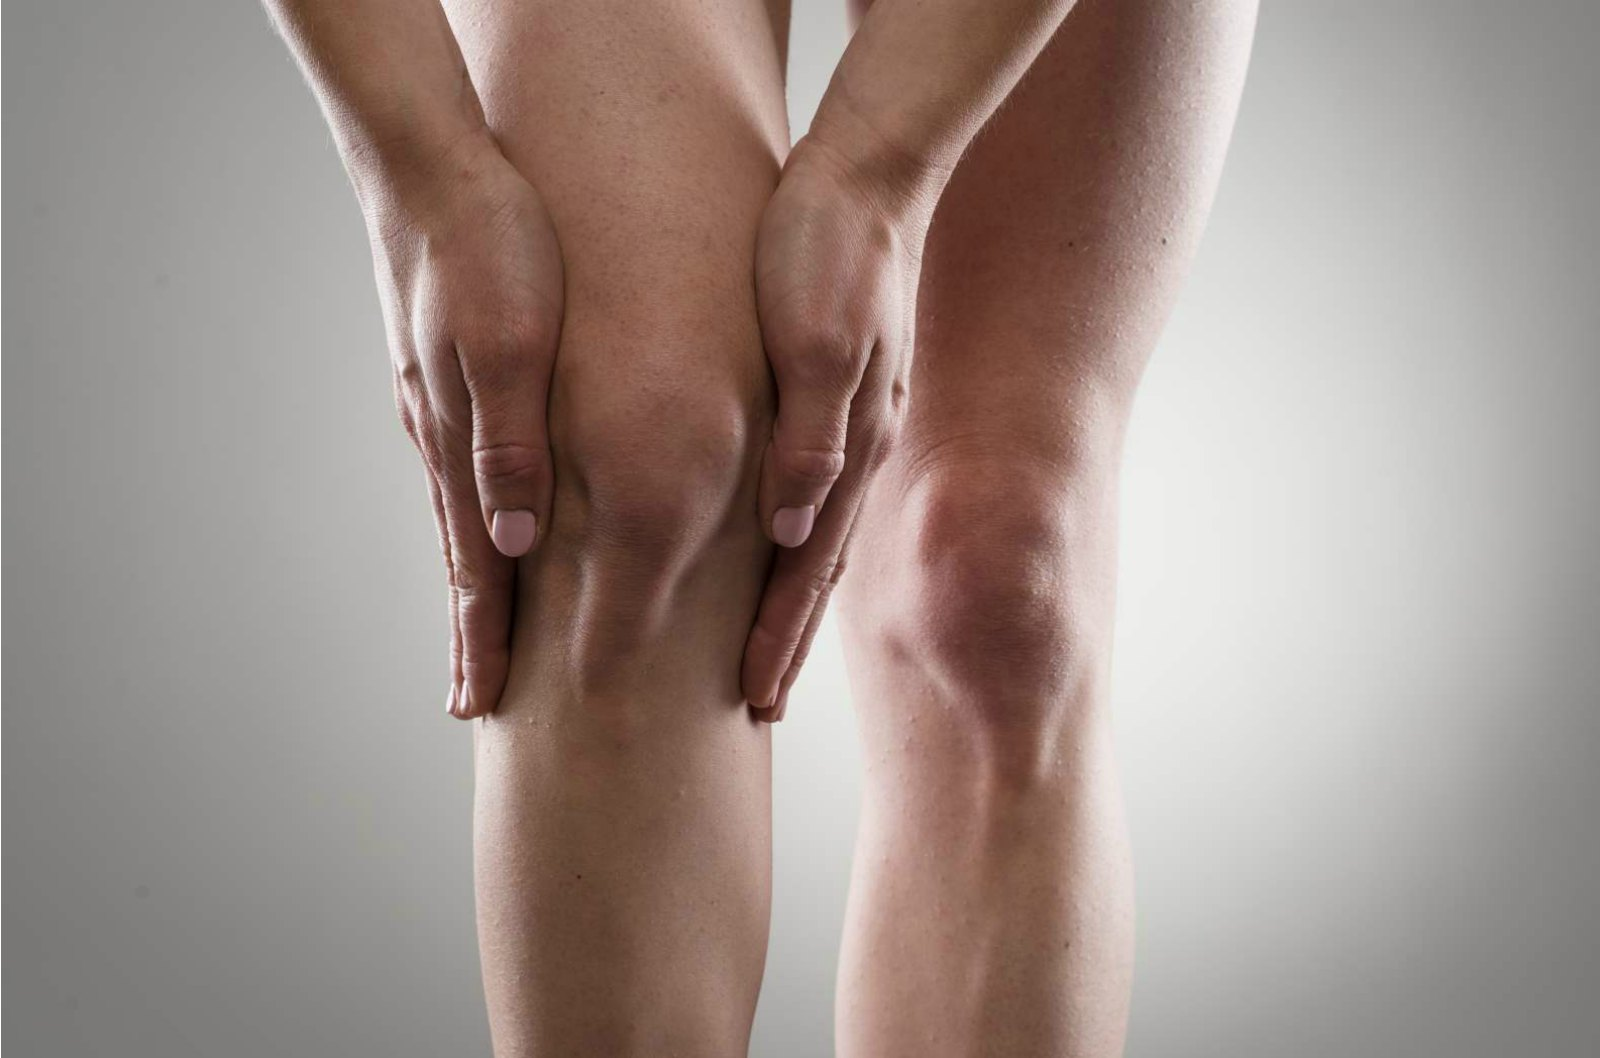 Industry and Academic Research in Regenerative Medicine Leads to Biological Treatment for Damaged Joints